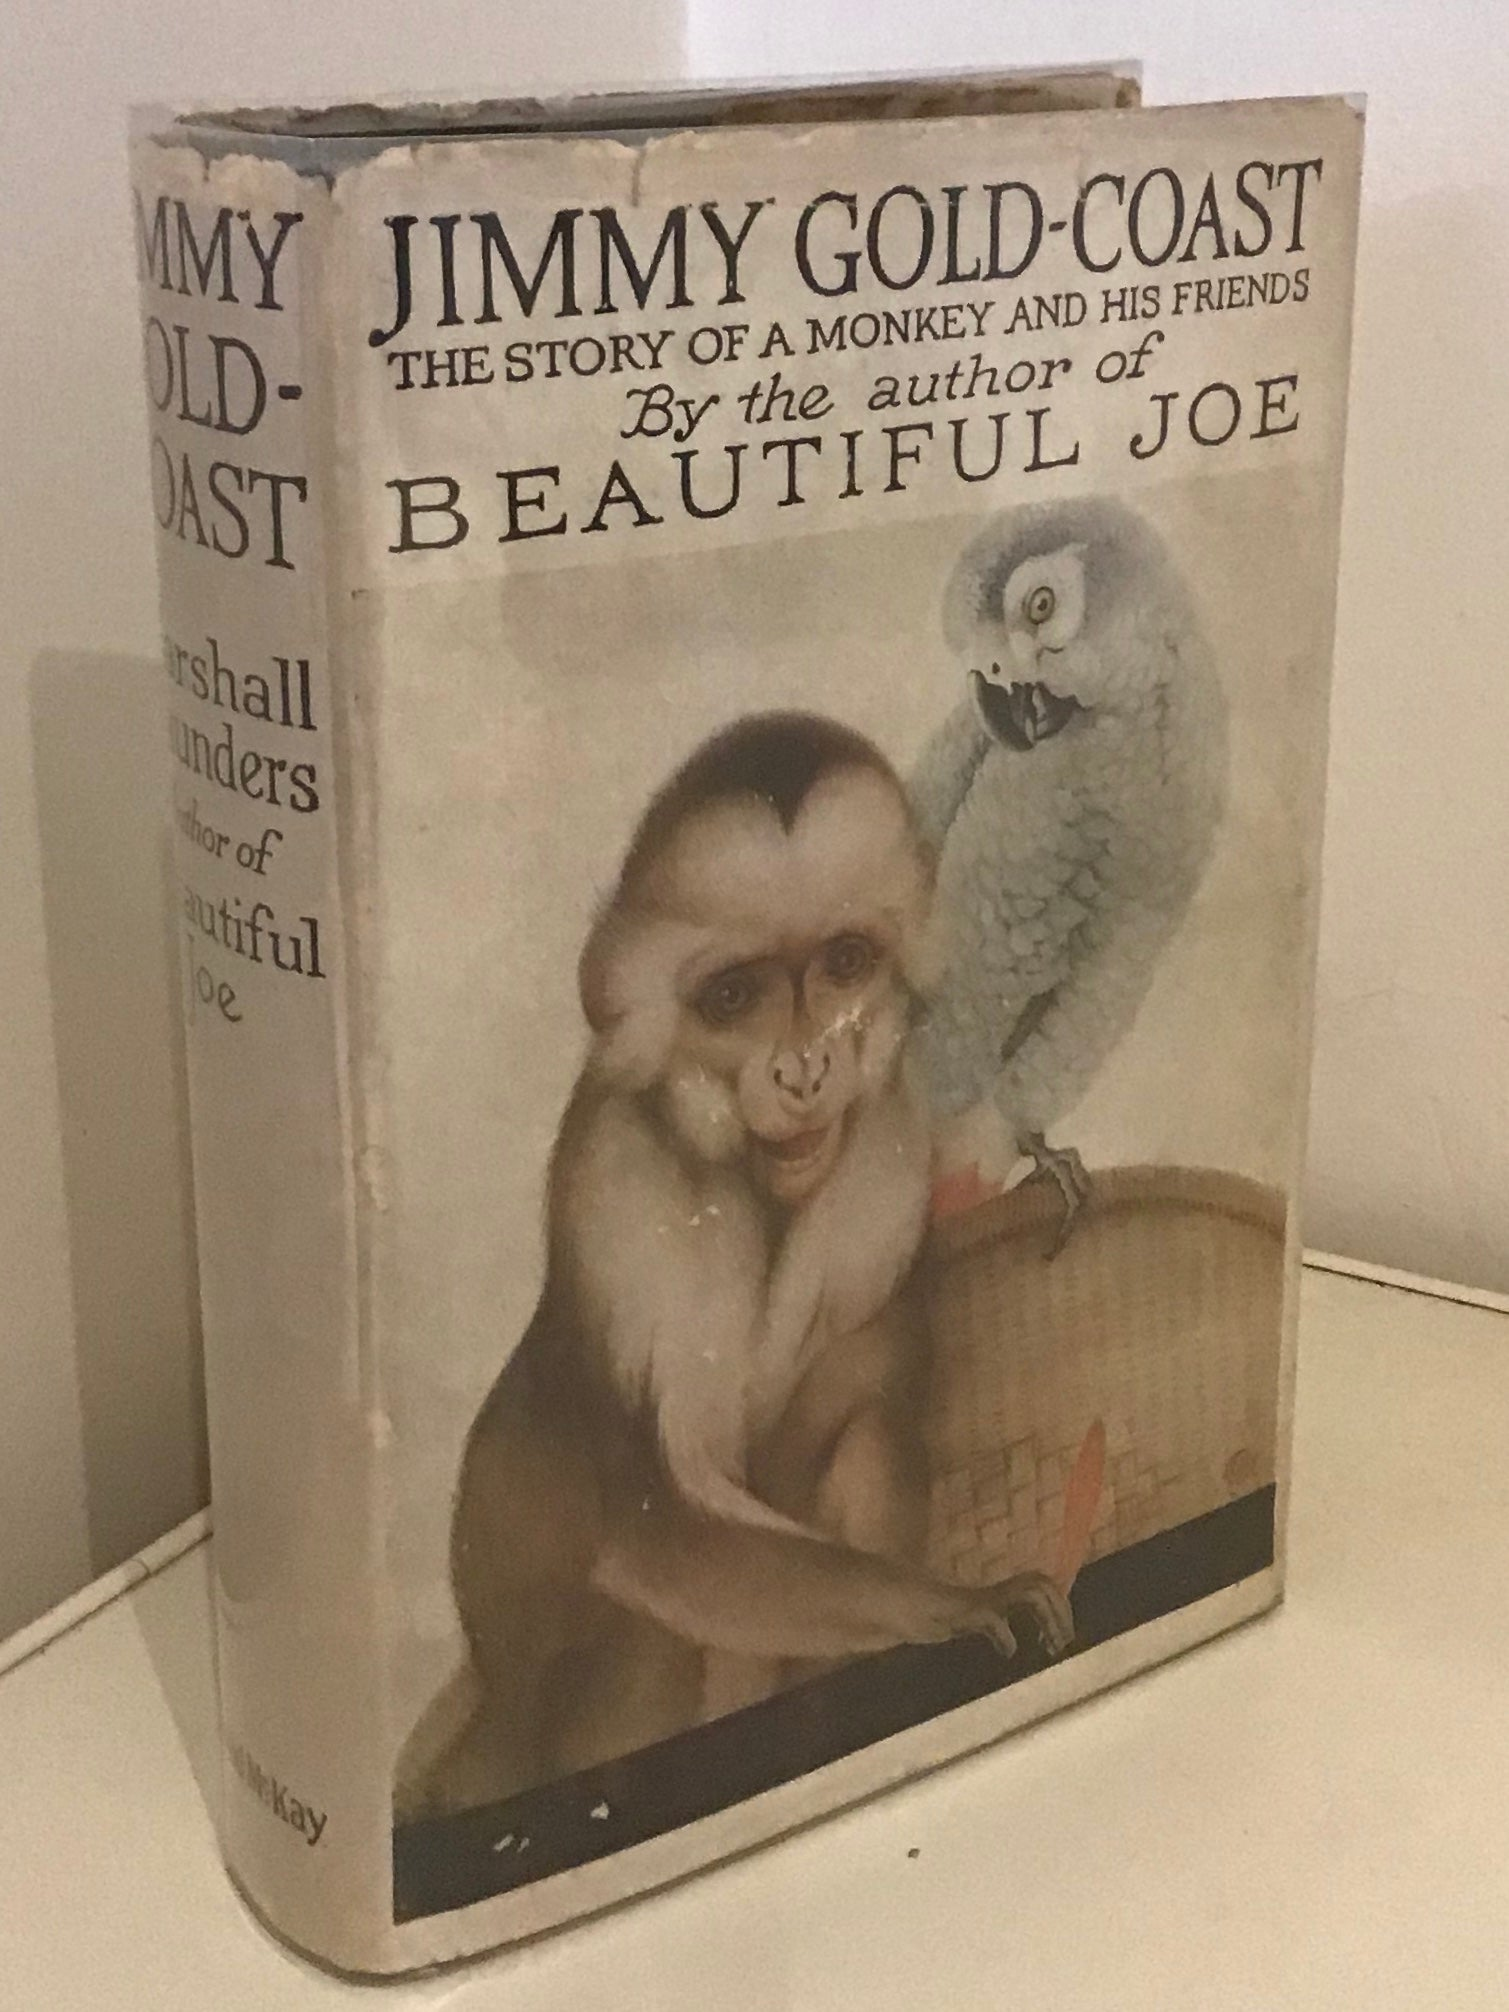 Jimmy Gold-Coast; The Story of a Monkey and his Friends